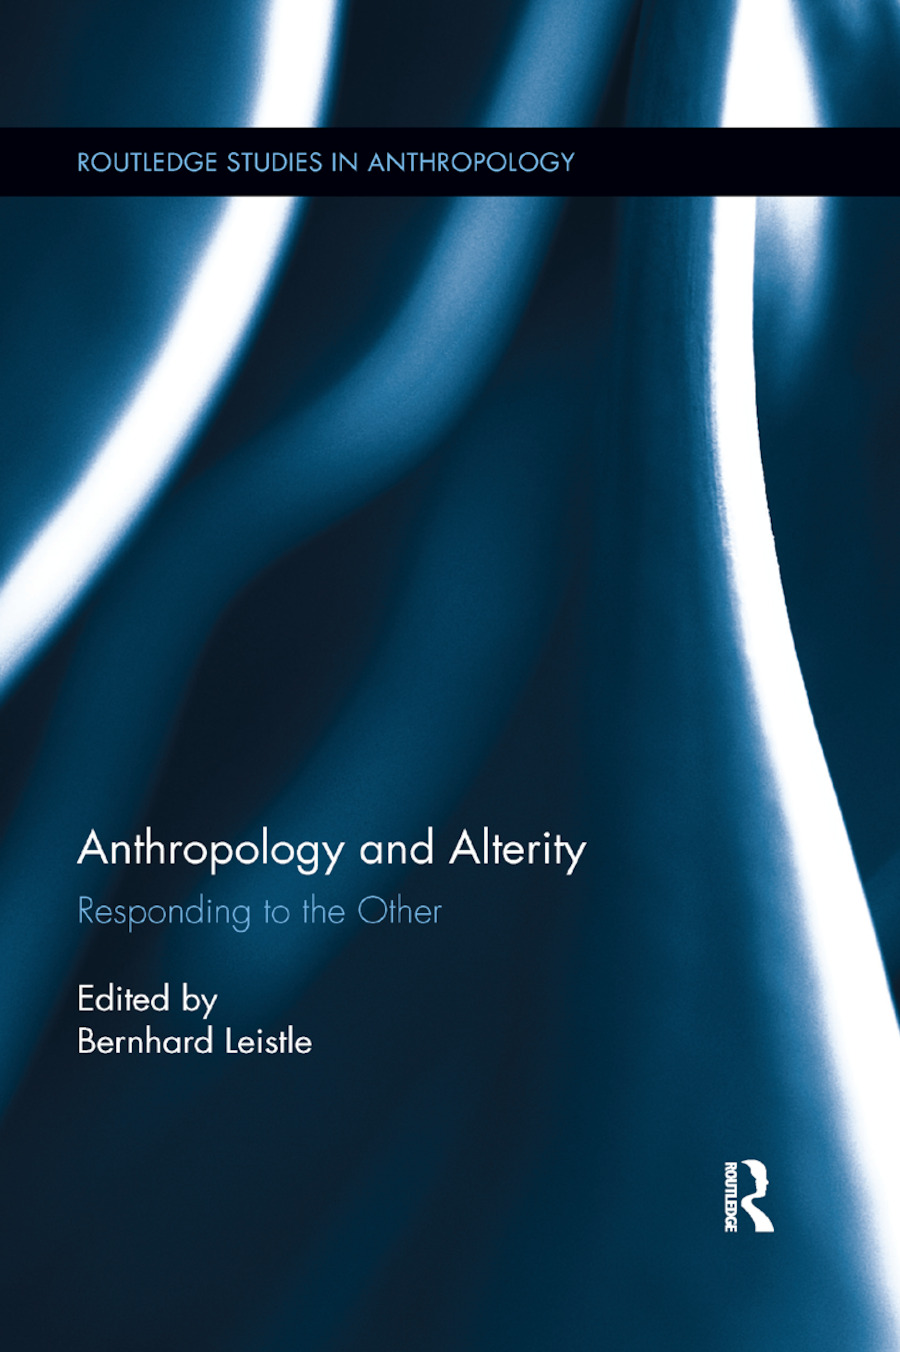 Anthropology and Alterity